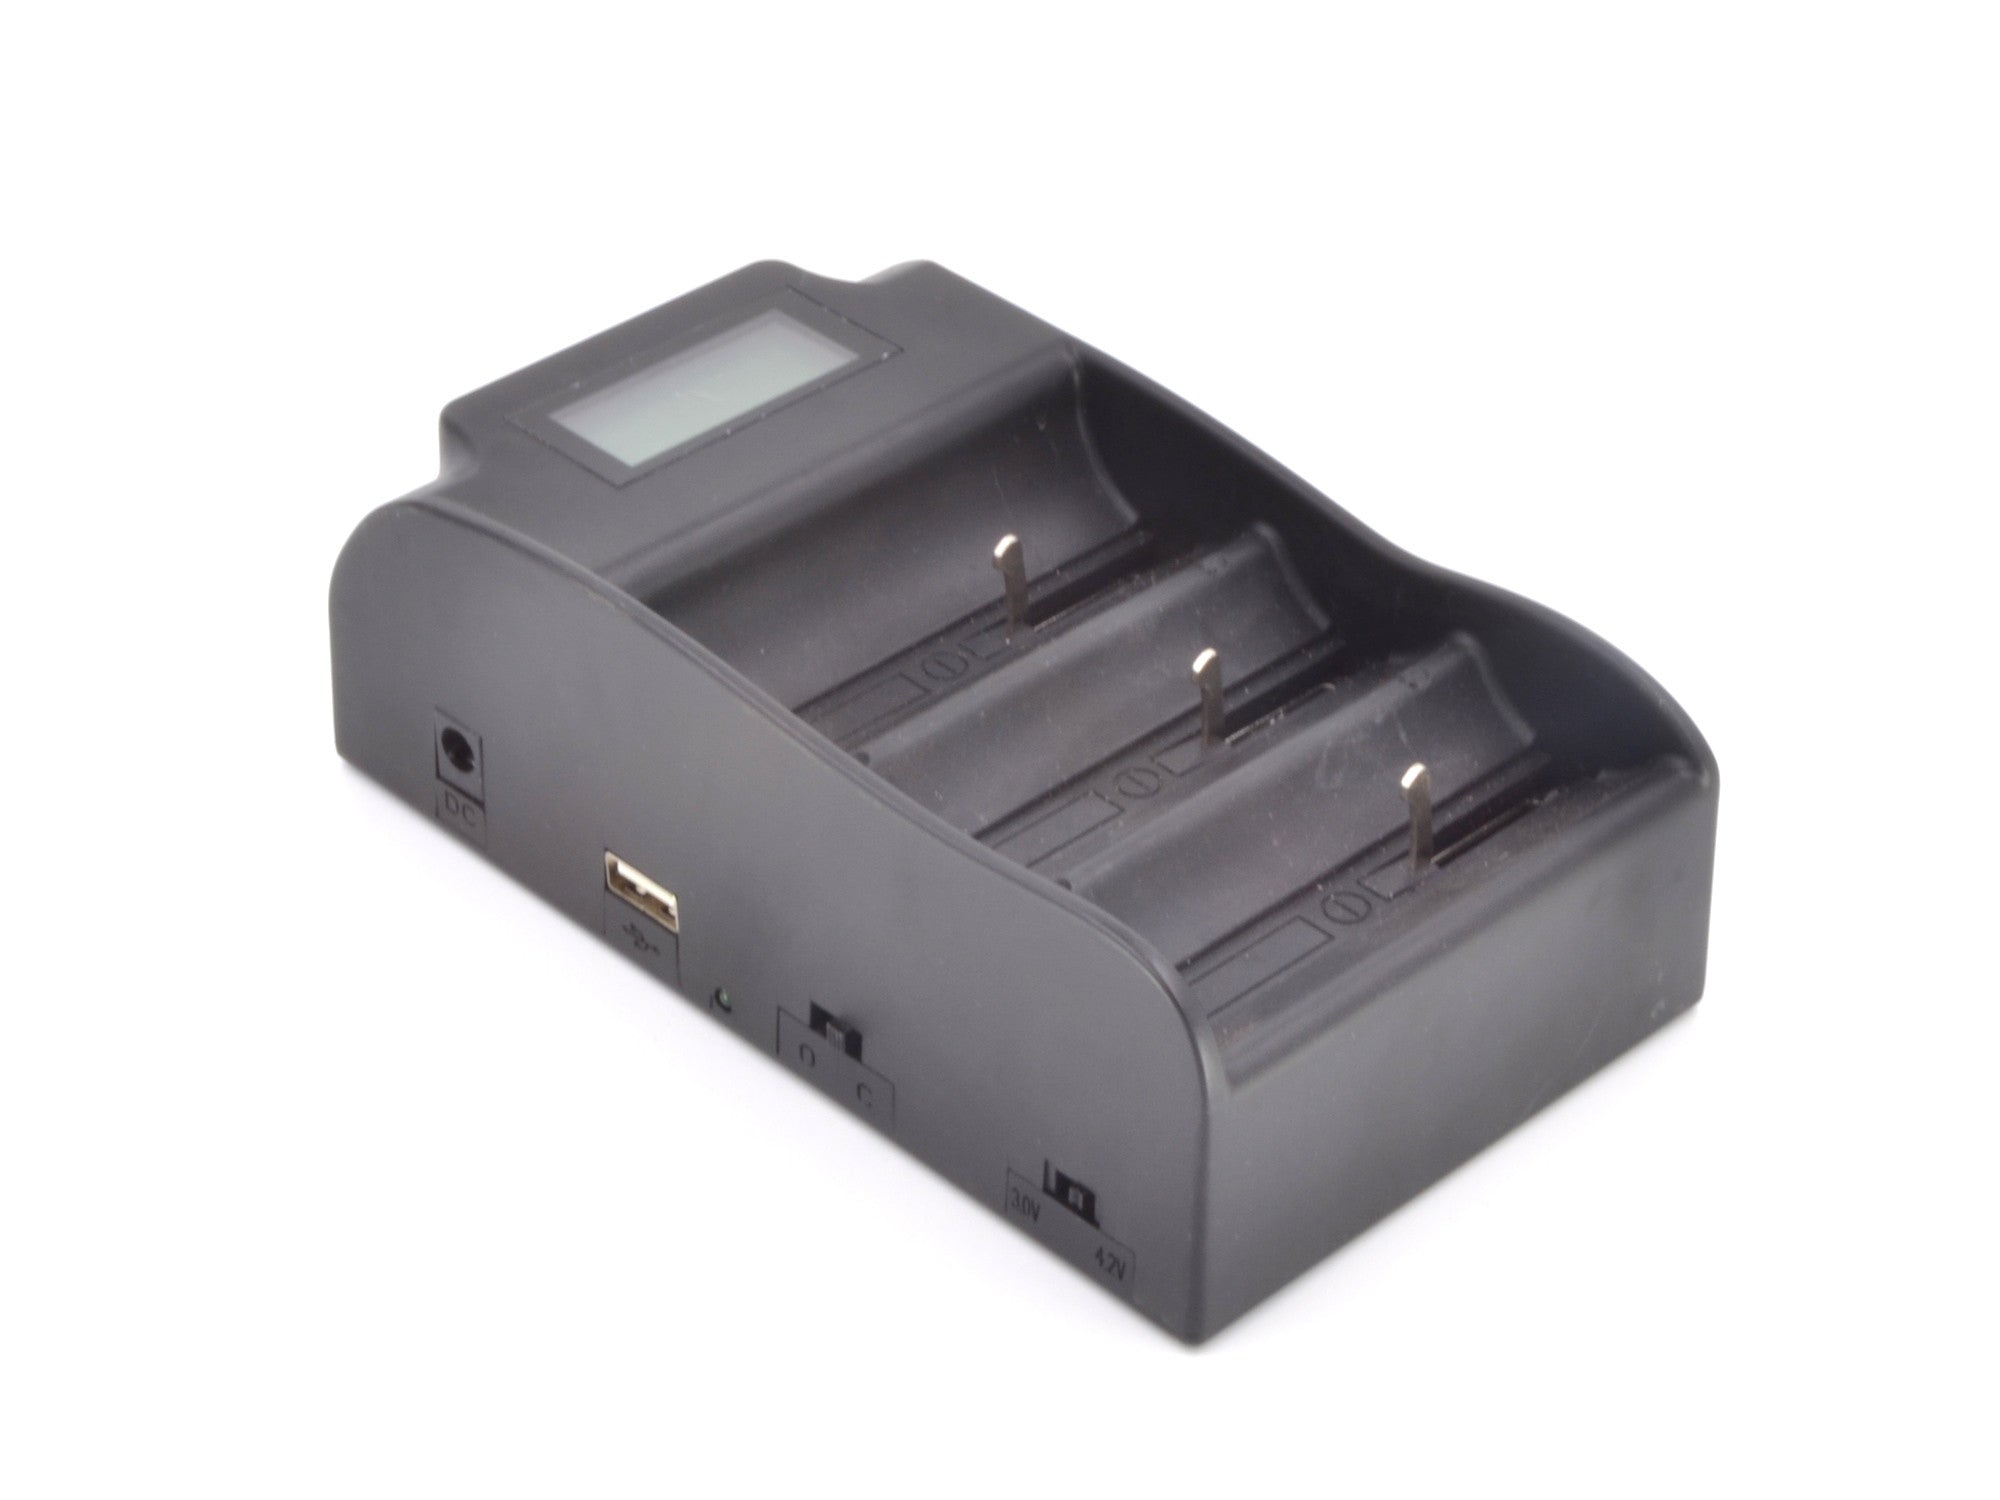 Triple Bay Smart Battery Charger for 26650 Batteries